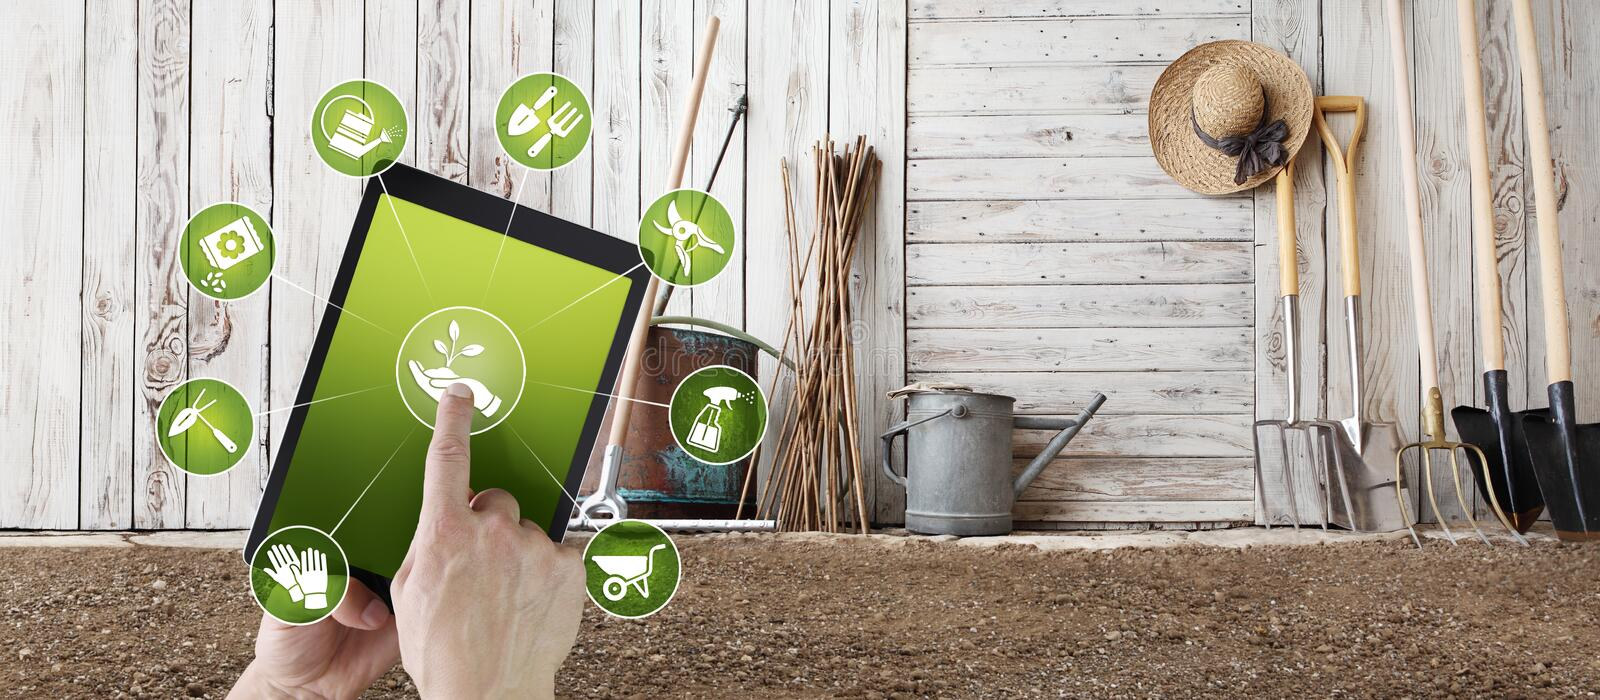 Gardening equipment e-commerce concept, online shopping on digital tablet, hand pointing and touch screen with garden tools icons. Tool shed in the background royalty free stock photo